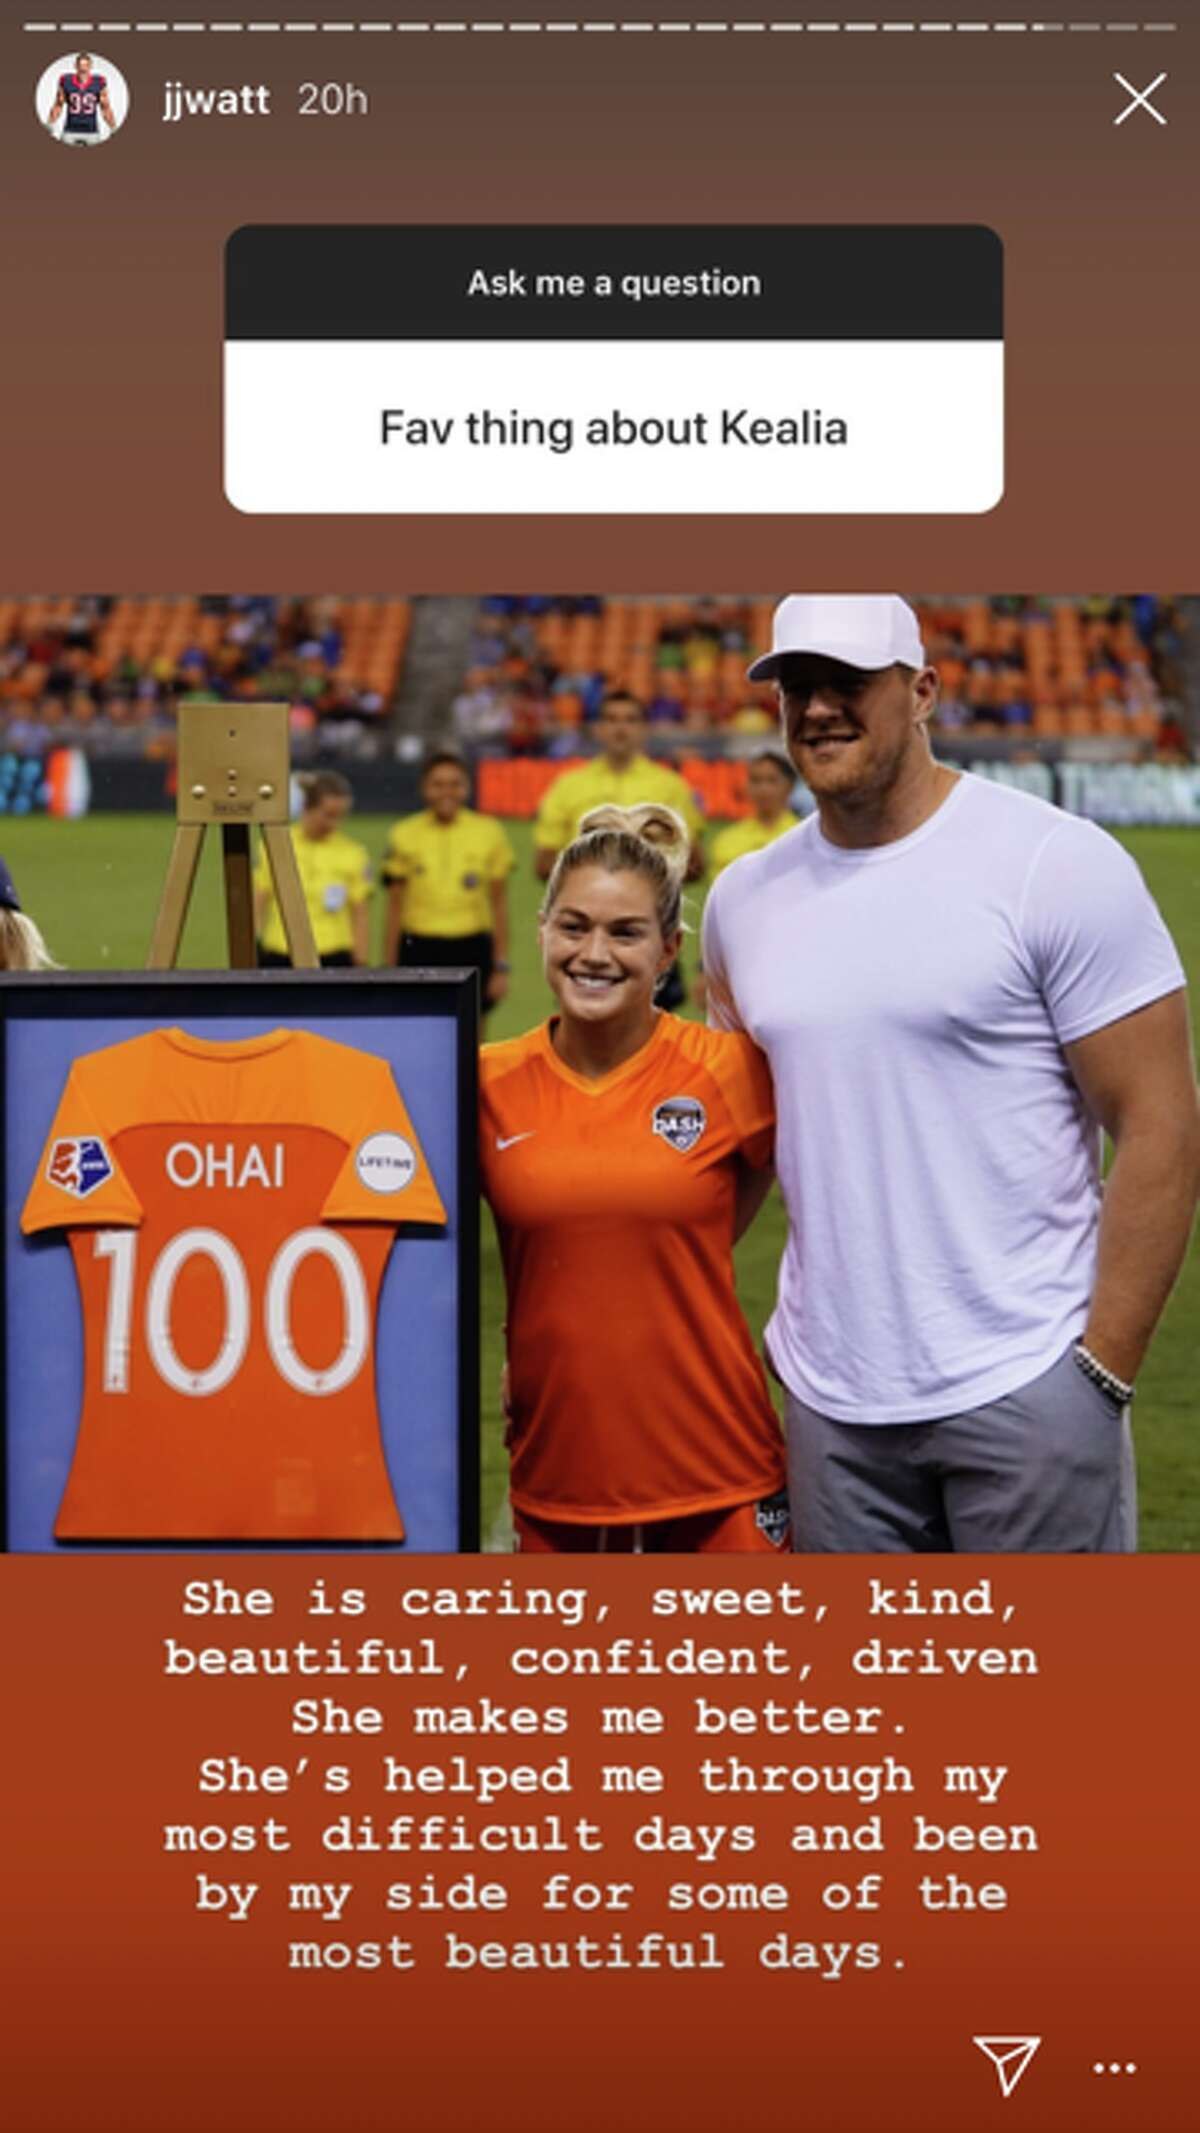 Fan question: Fav thing about Kealia? @jjwatt'sanswer: She is caring, sweet, kind, beautiful, confident, driven. She makes me better. She's helped me through my most difficult days and been by my side for some of the most beautiful days.